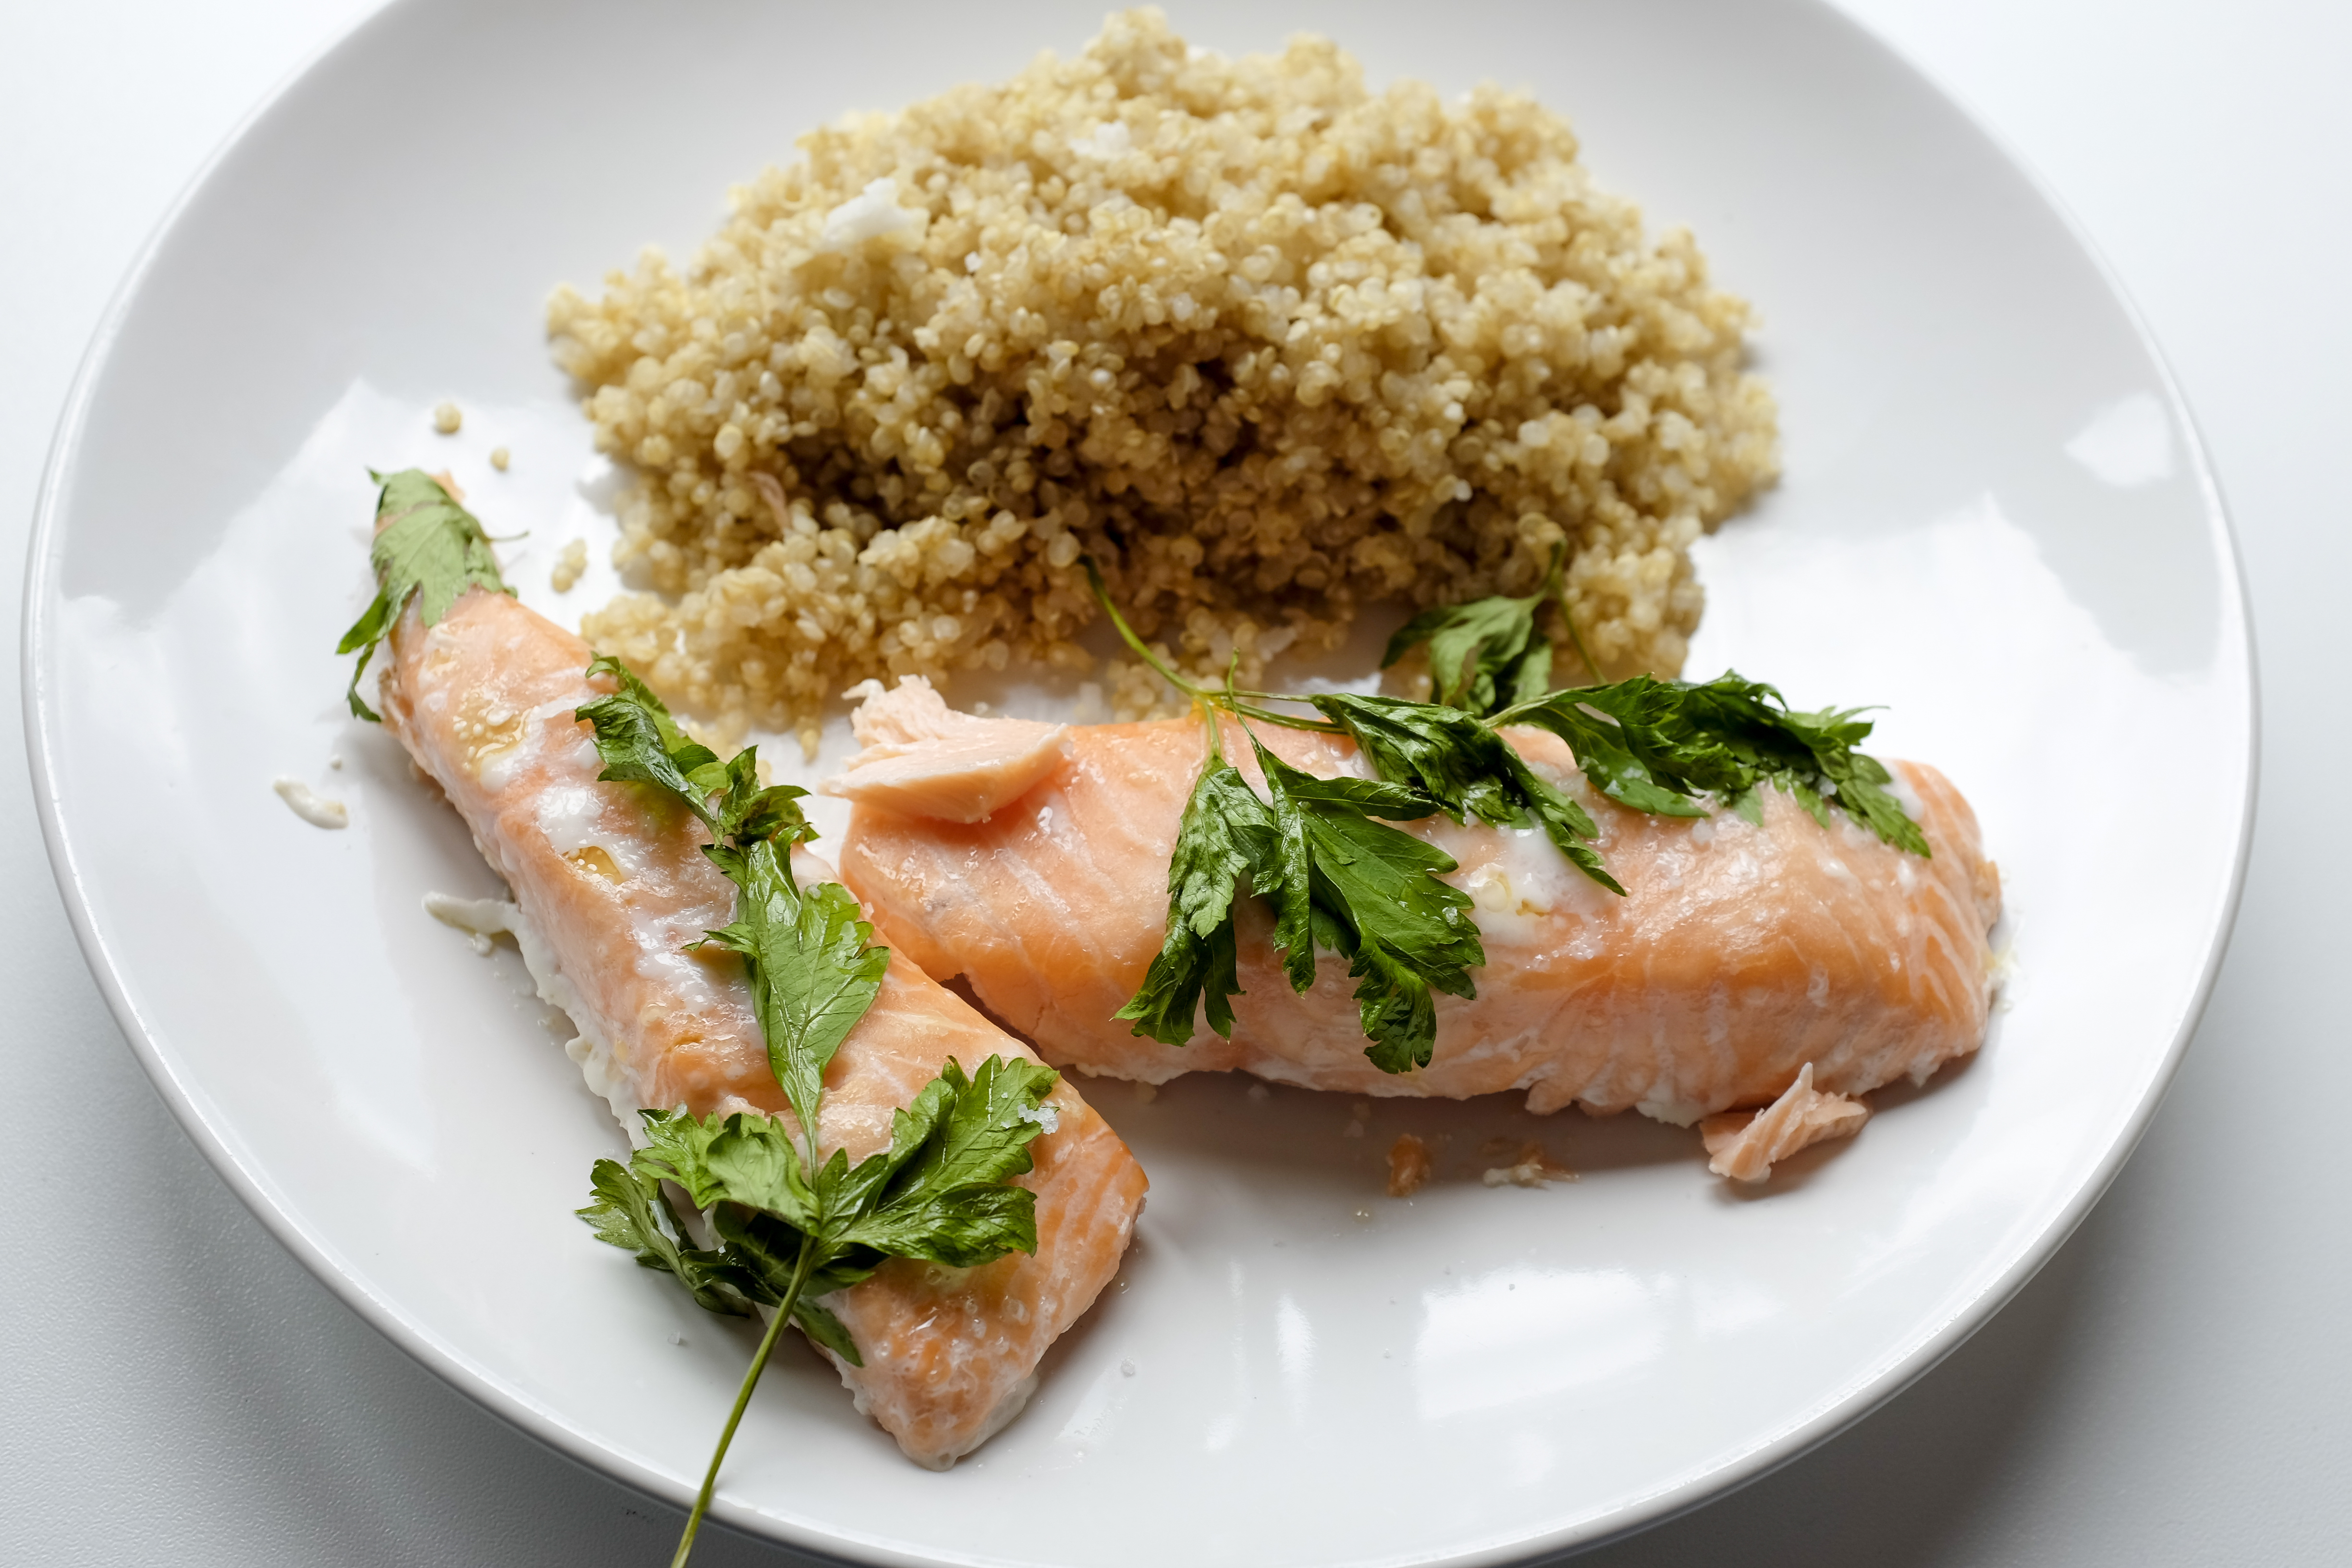 Plate of salmon with quinoa